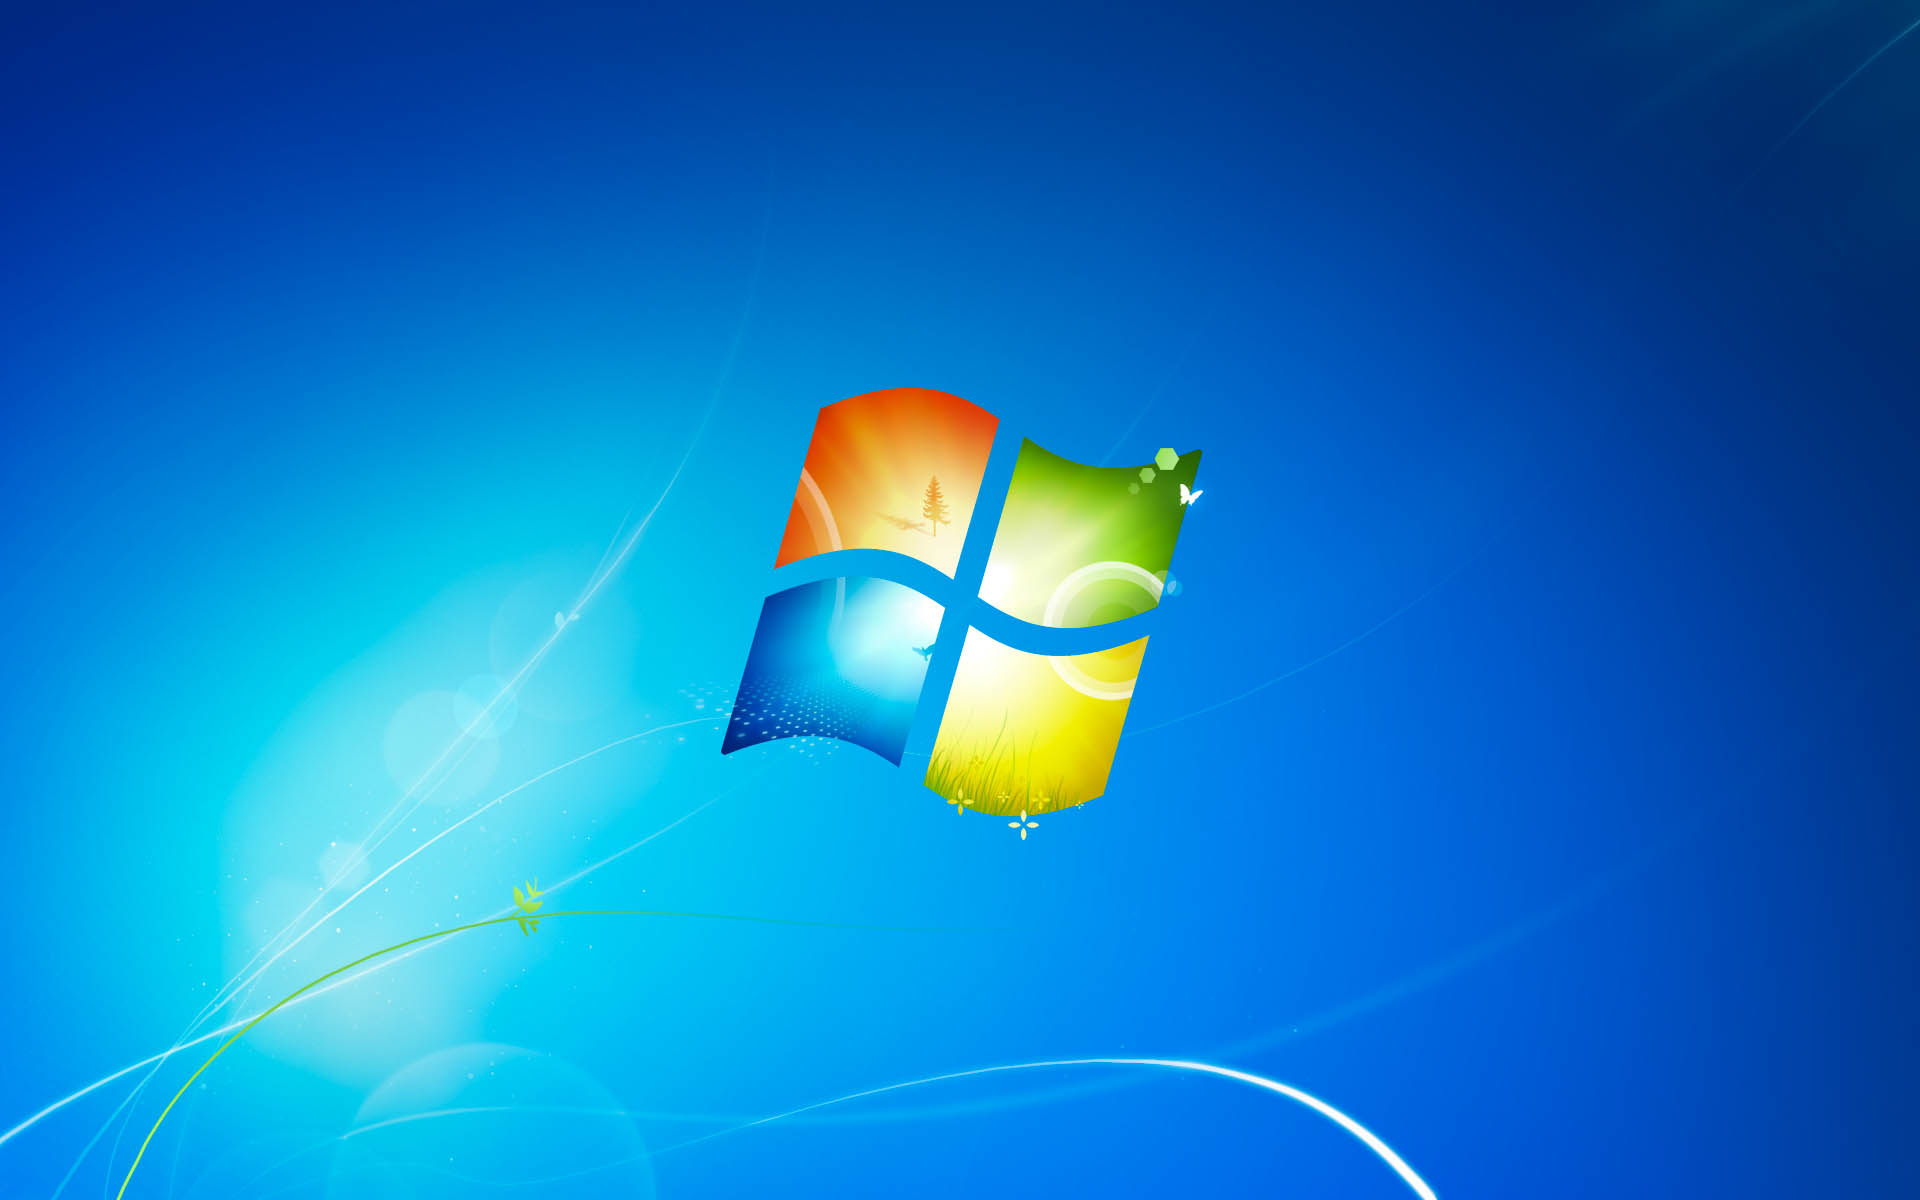 Windows Wallpapers And Desktop Backgrounds